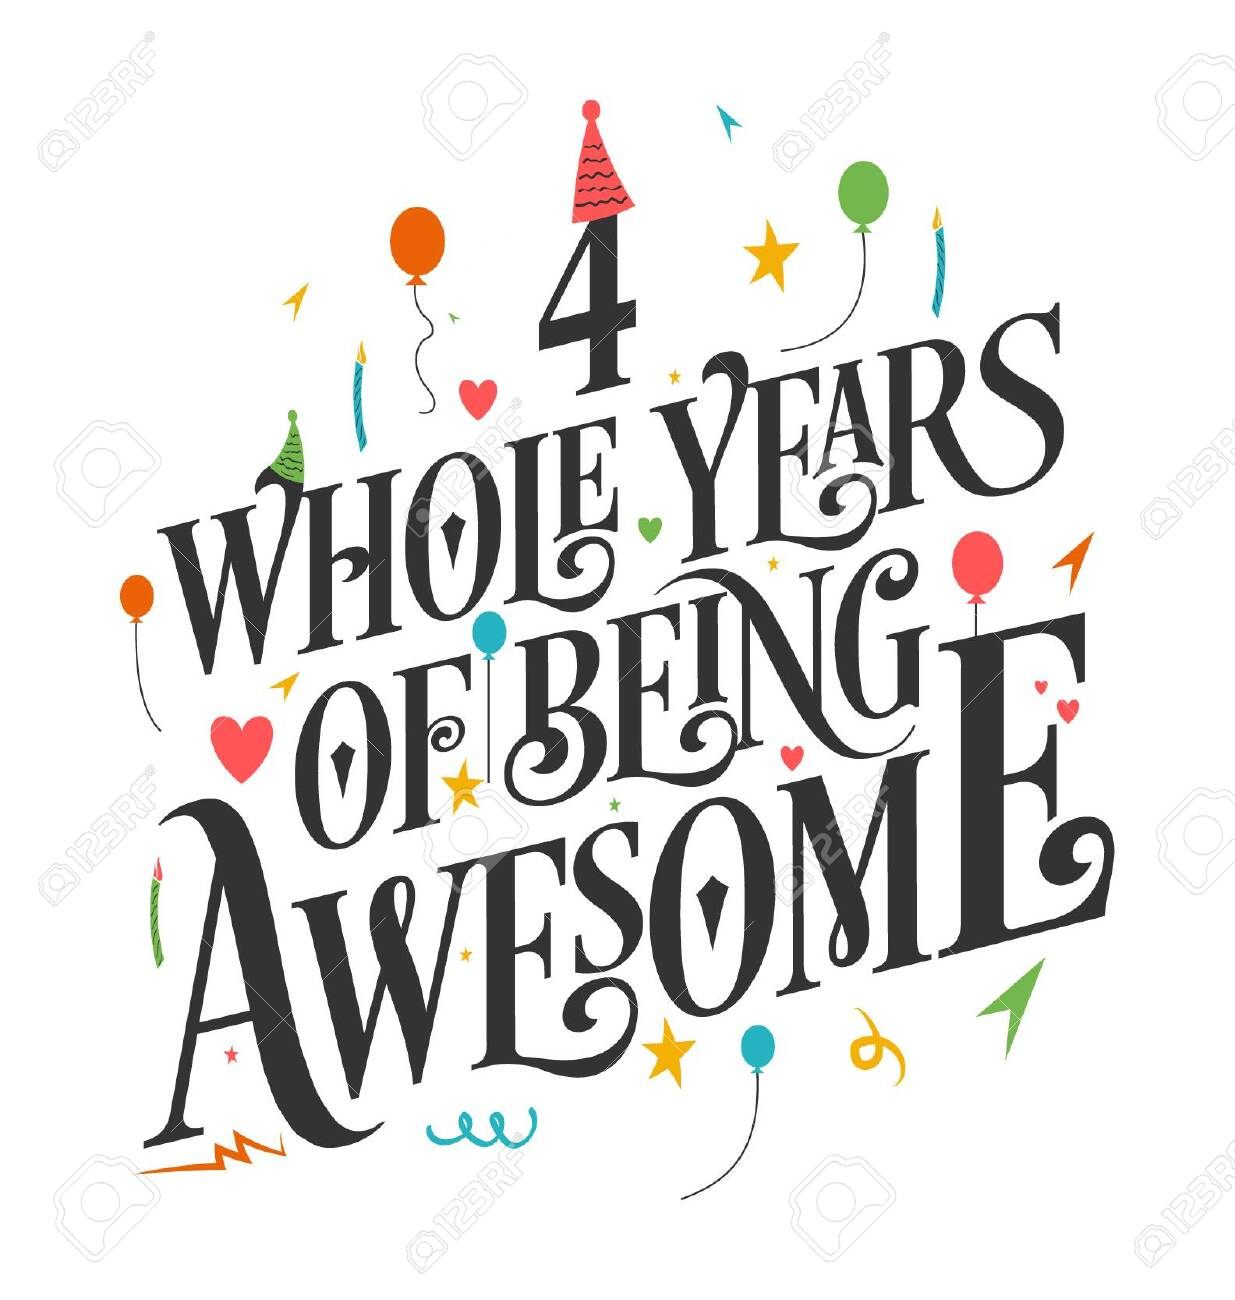 4th Birthday And 4th Wedding Anniversary Typography Design 4 Royalty Free Cliparts Vectors And Stock Illustration Image 138837685